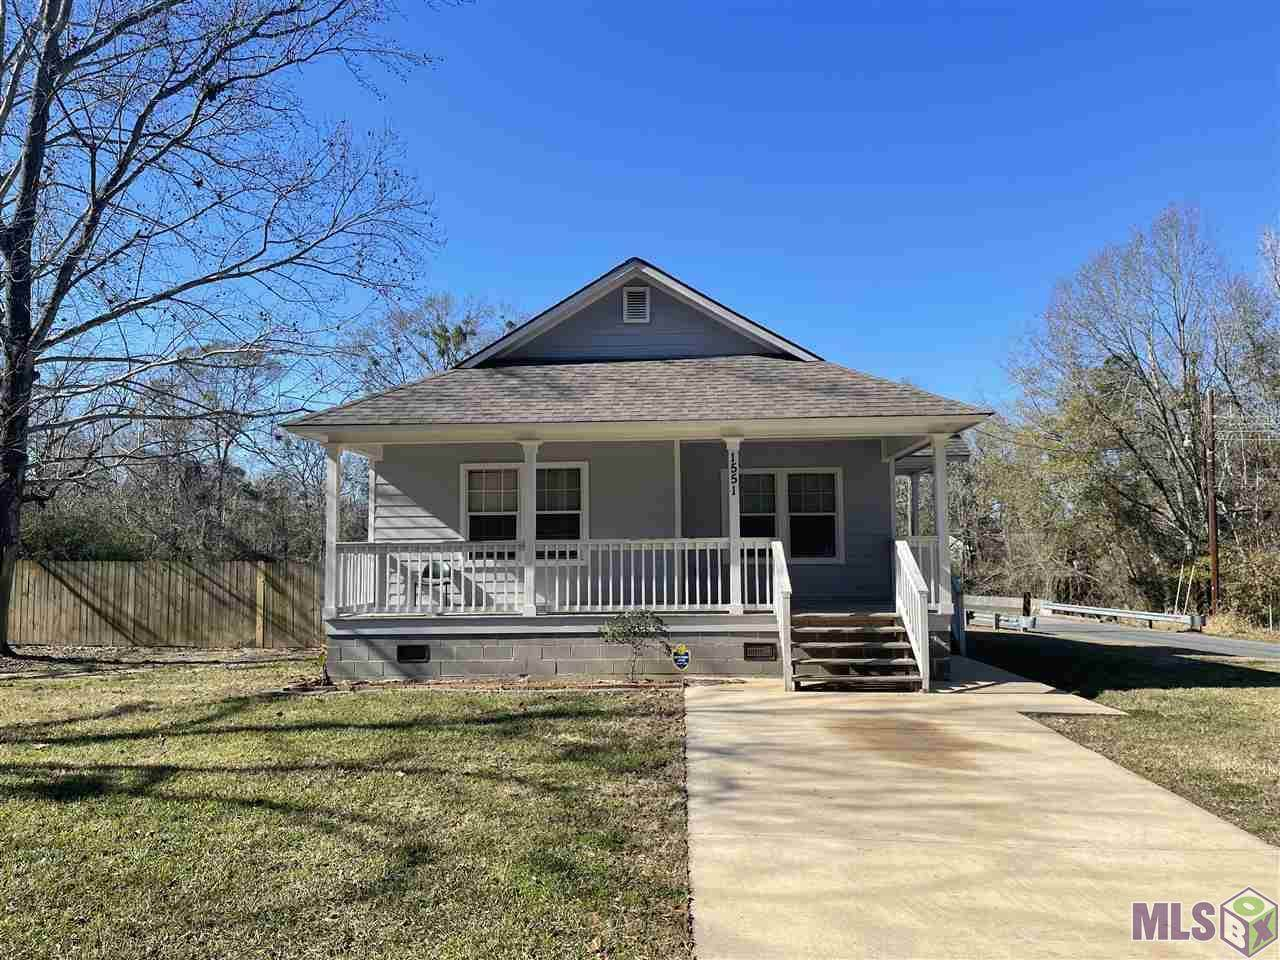 1551 Parkway Dr - Photo 1